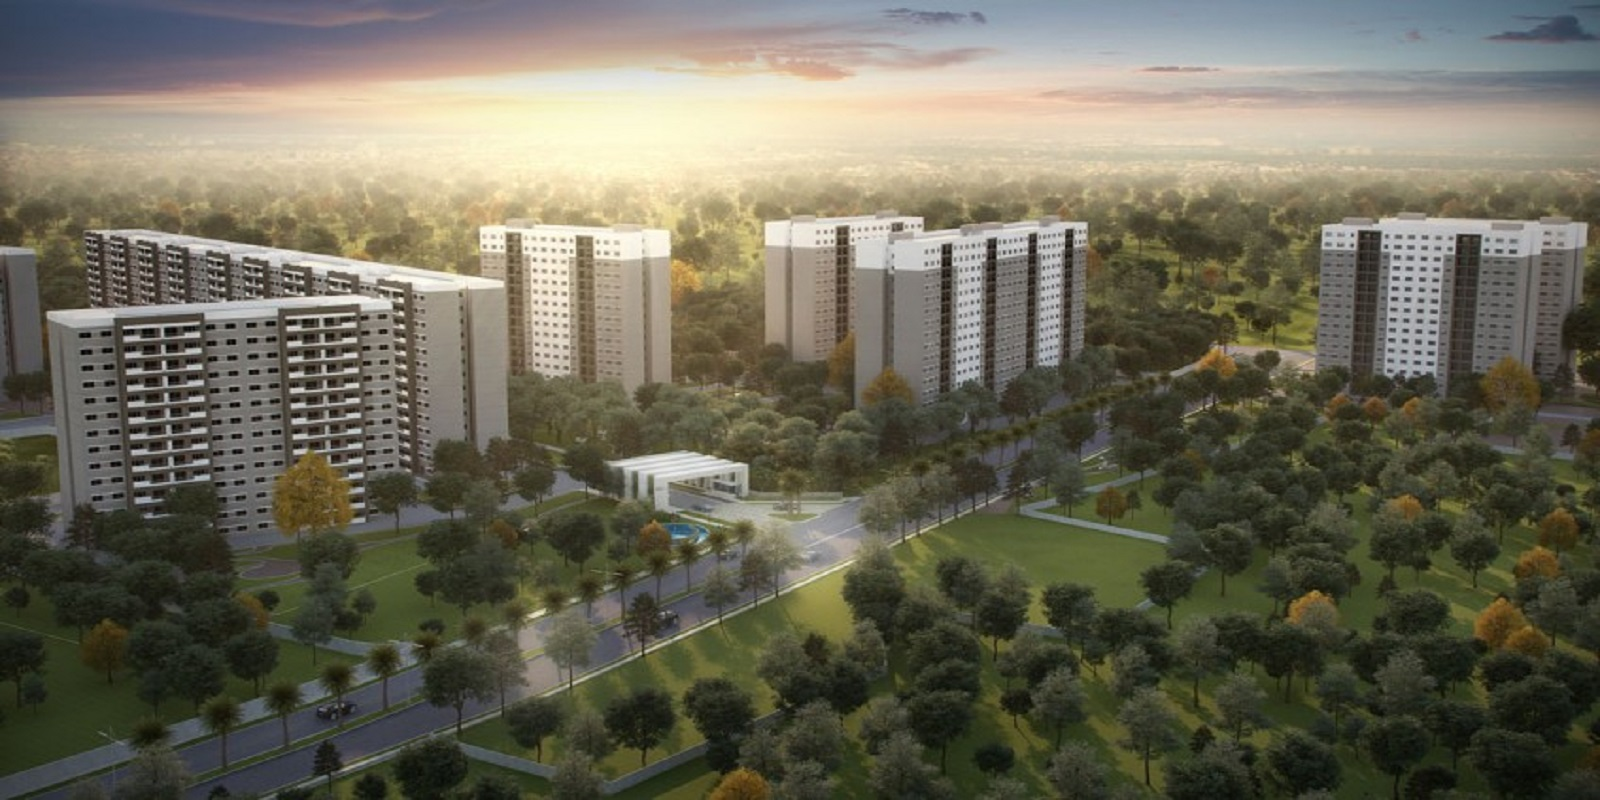 sobha tropical greens phase 22 wing 23 and 24 project large image2